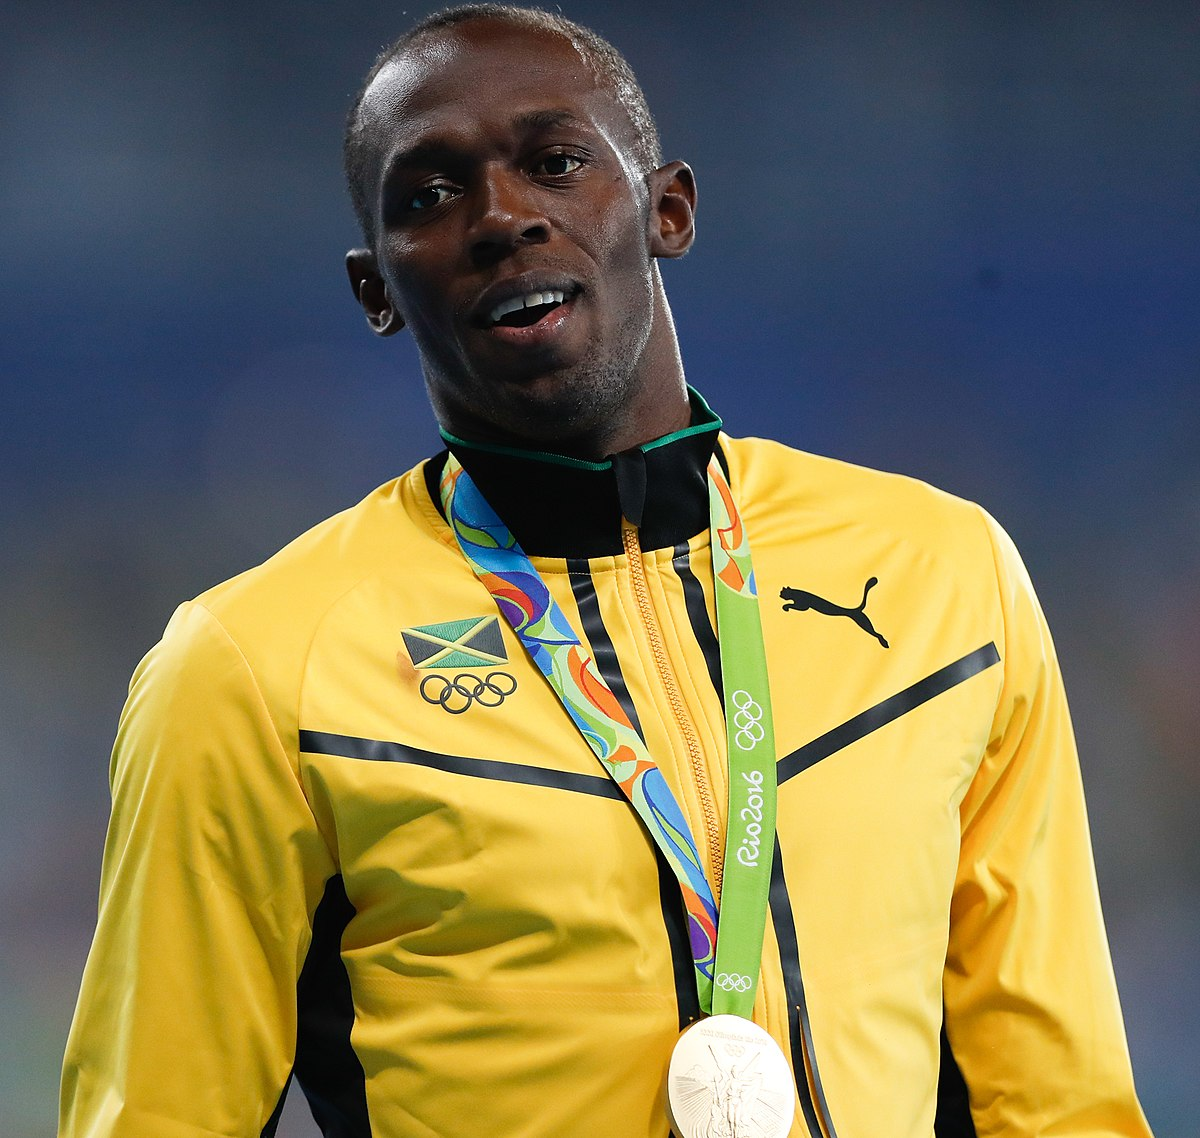 08eb1a3546 Usain Bolt - Wikipedia